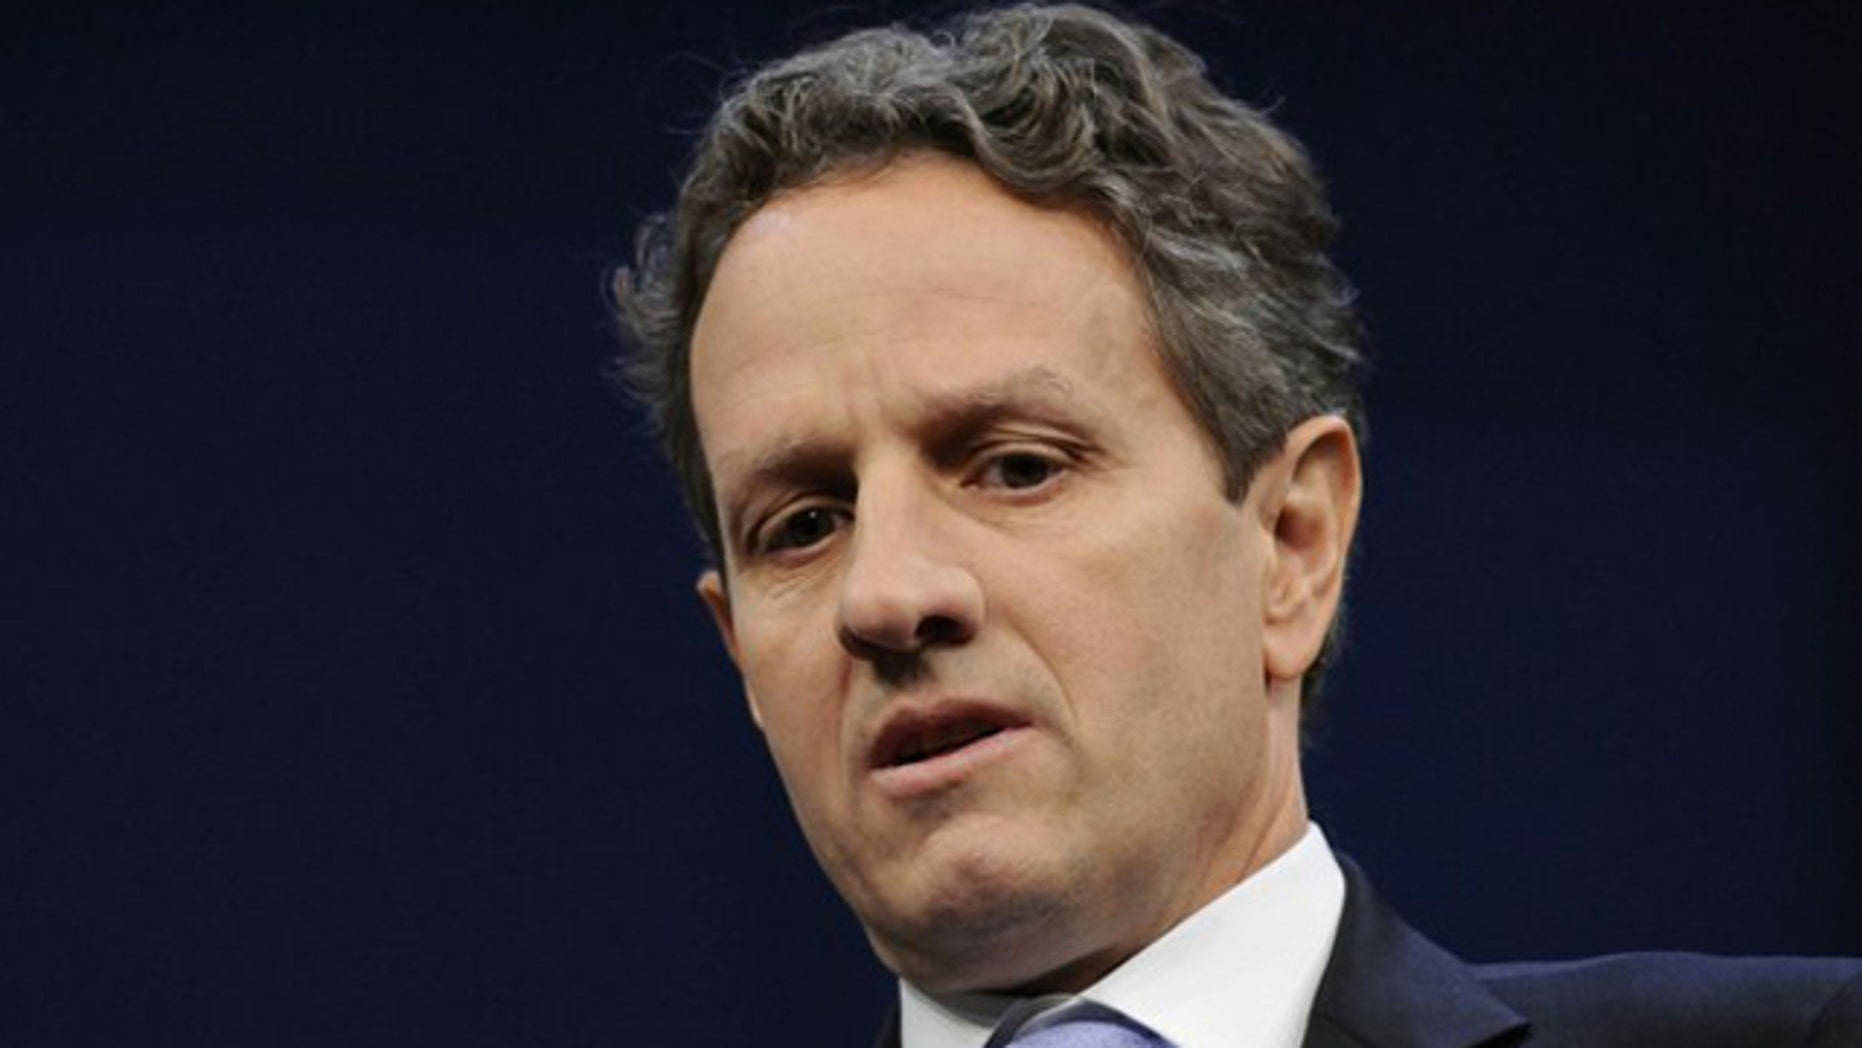 Treasury Secretary Timothy Geithner sits onstage for an interview at the Newseum in Washington May 25.